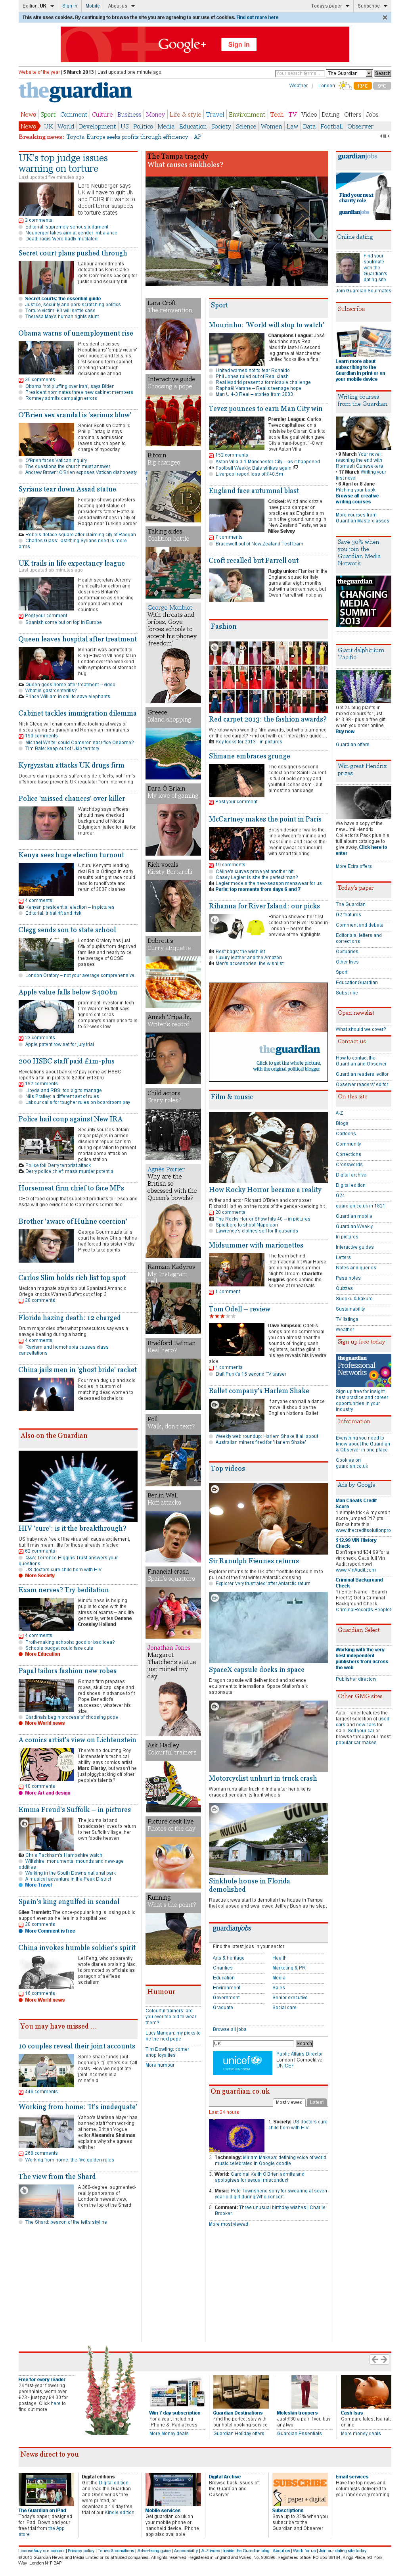 The Guardian at Tuesday March 5, 2013, 12:10 a.m. UTC